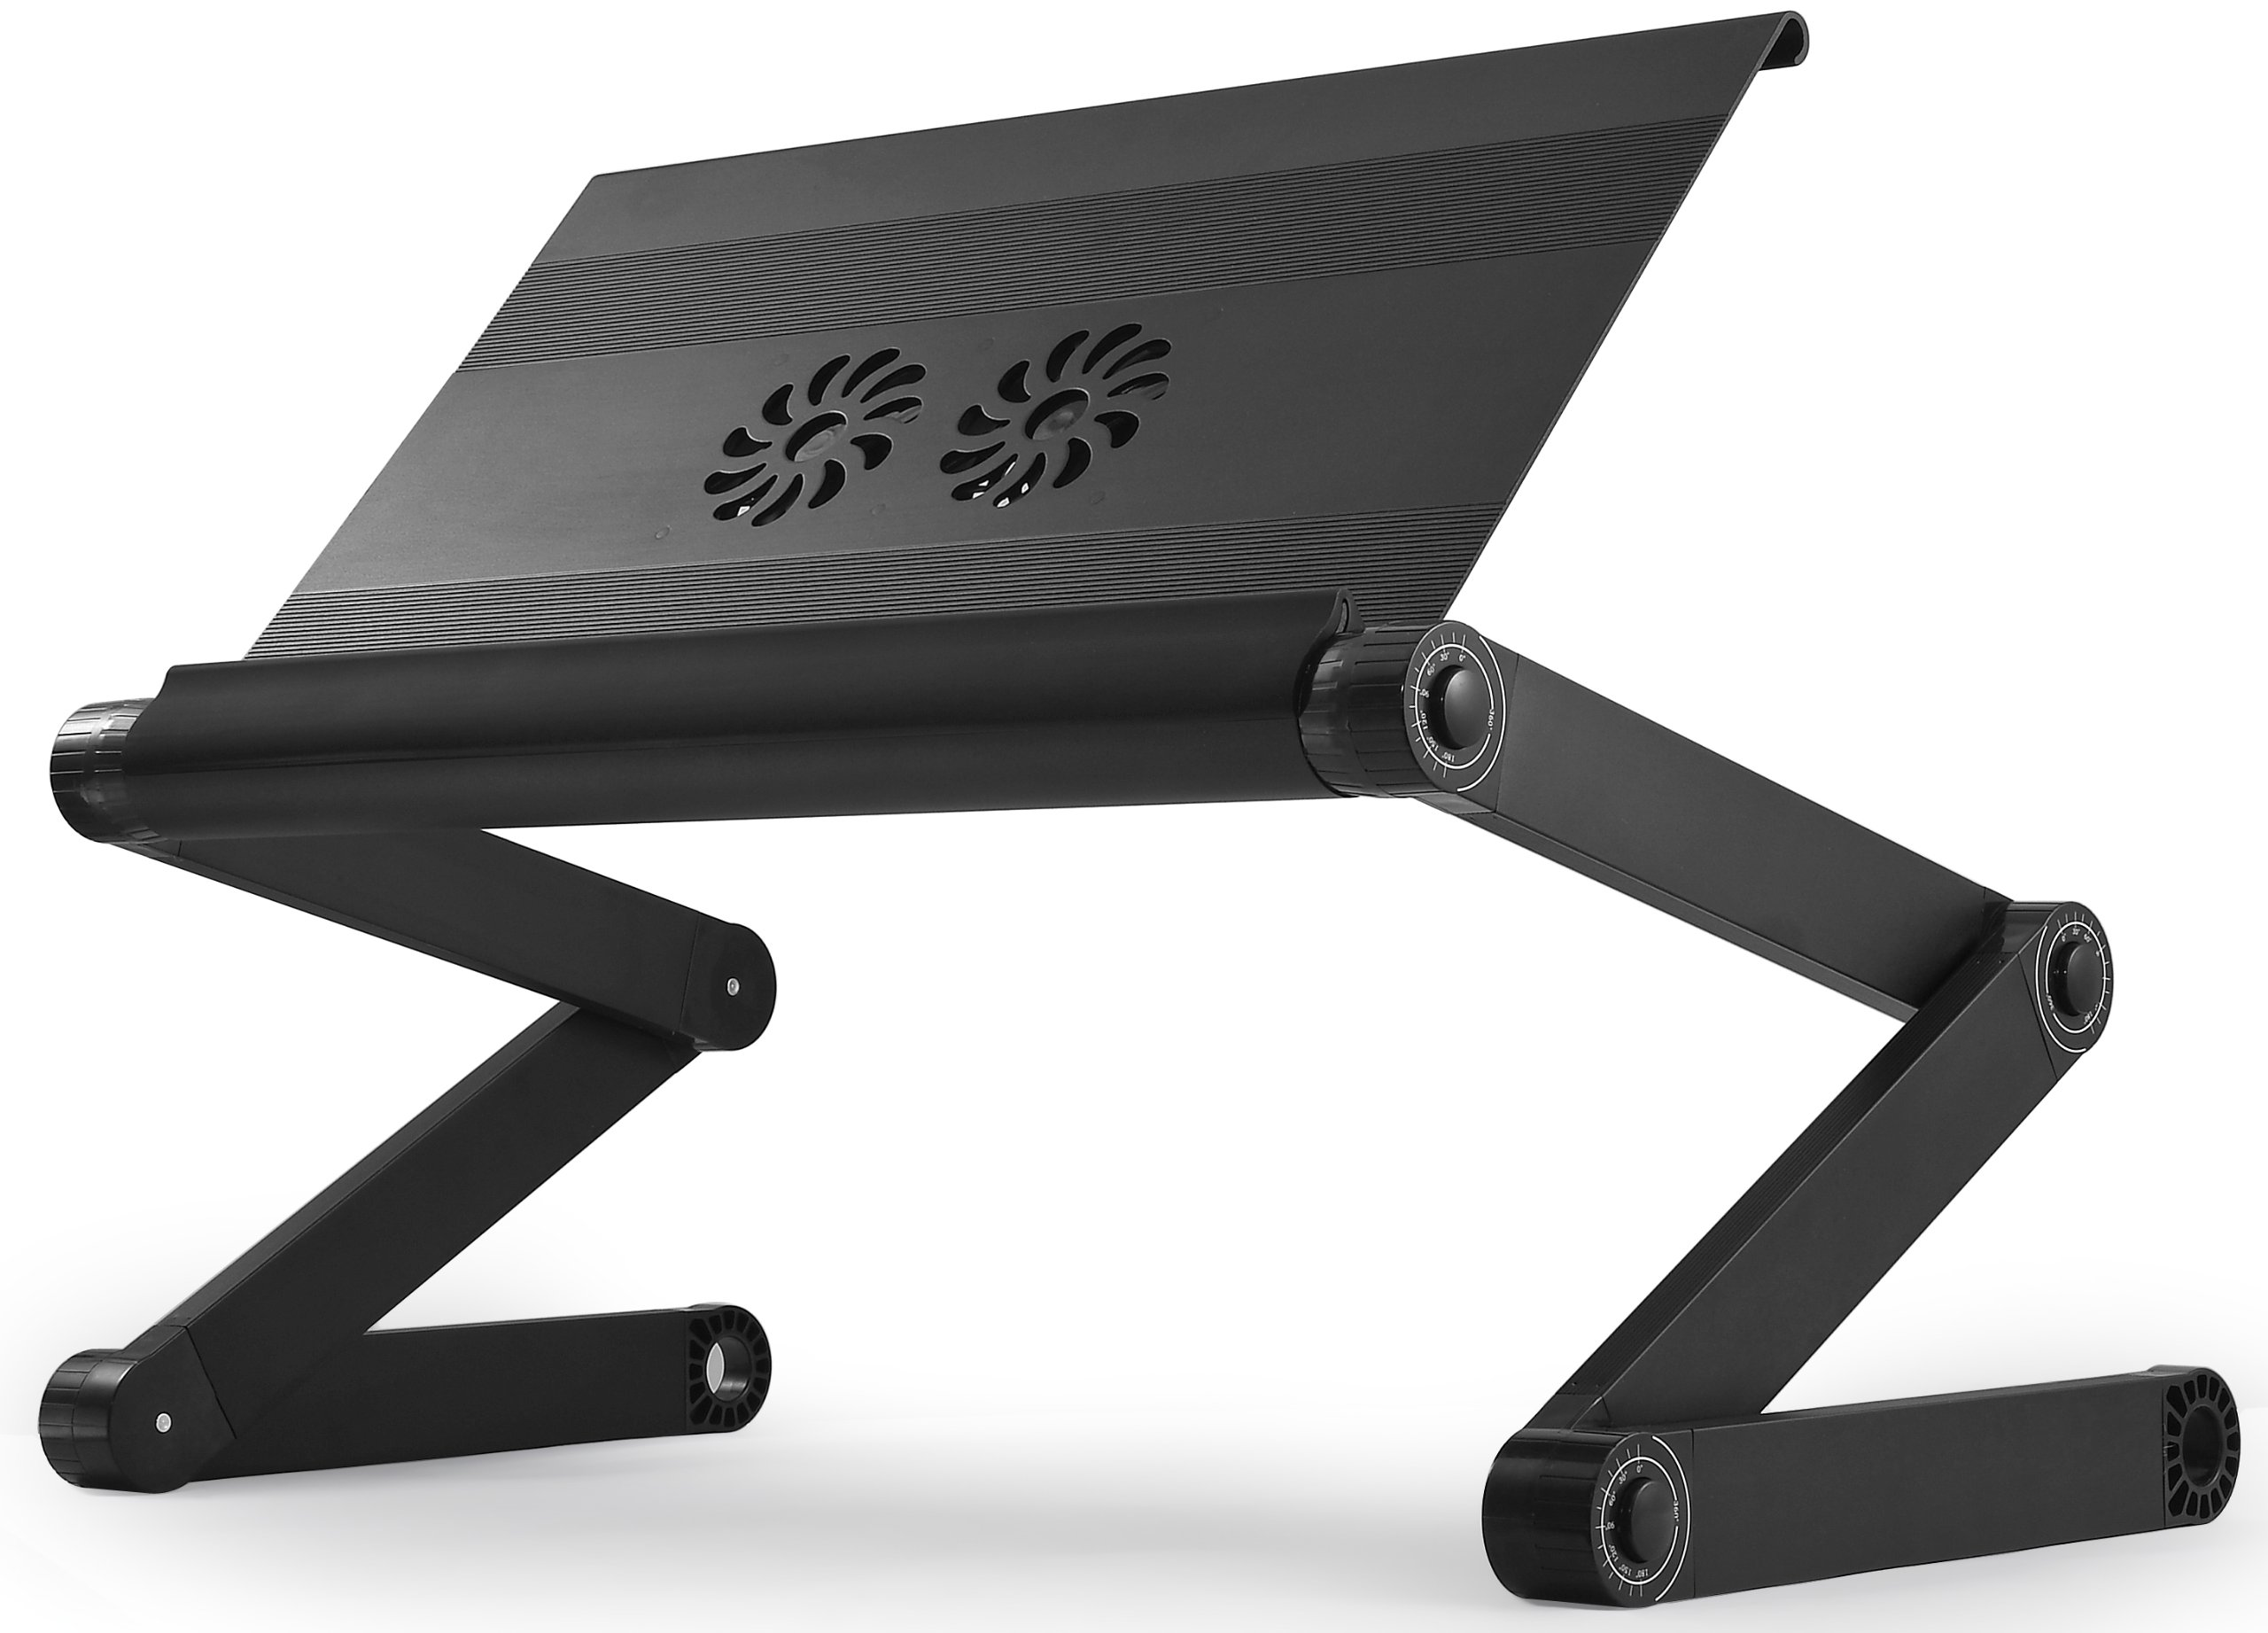 WorkEZ Executive Multifunctional Ergonomic Laptop Stand, Lap Desk For Bed & Couch, Folding Adjustable Height & Angle Notebook Riser 2 Fans 3 USB Ports